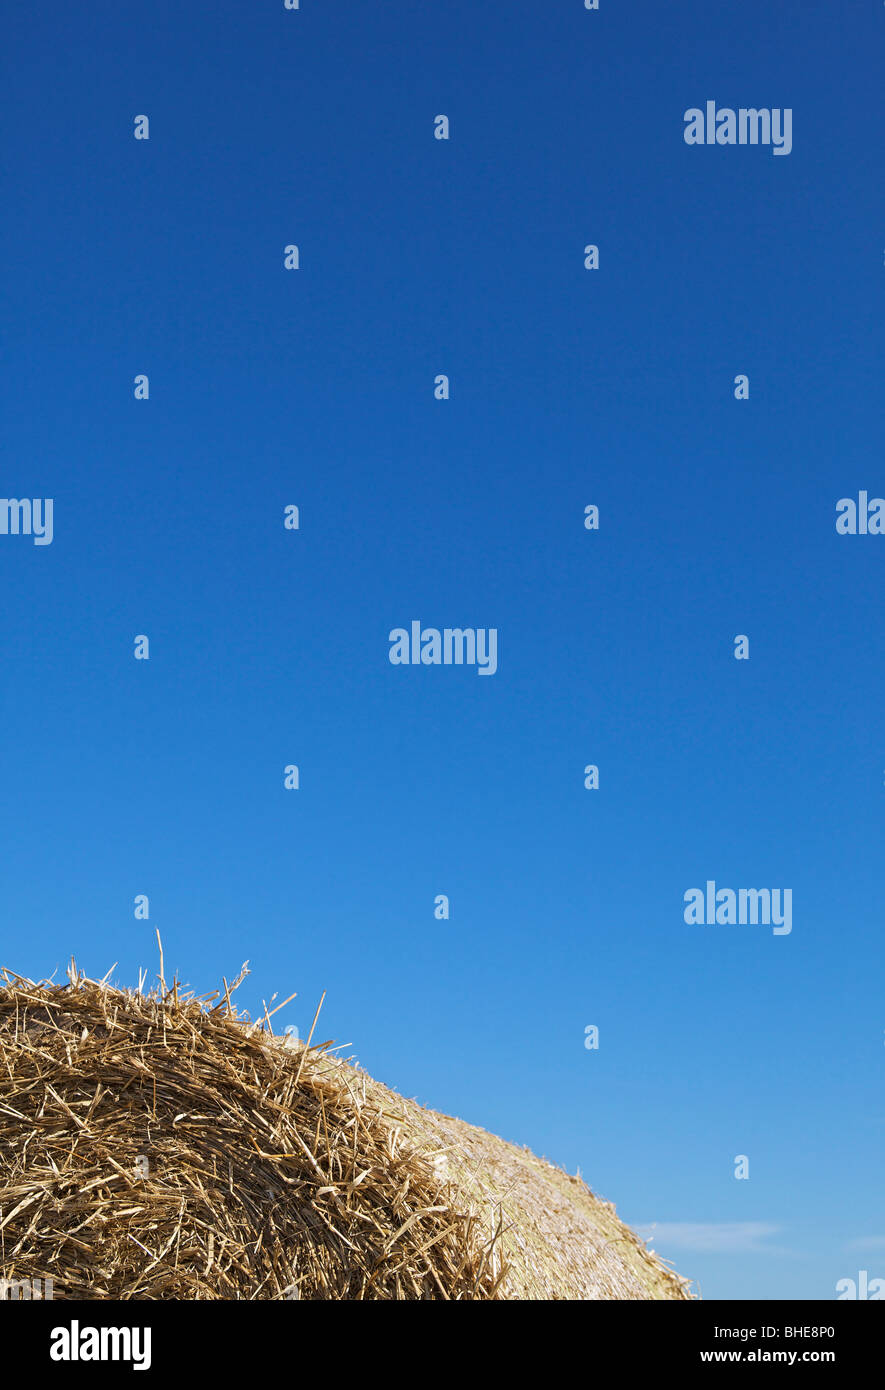 Top part of round straw bale against strong blue sky - Stock Image